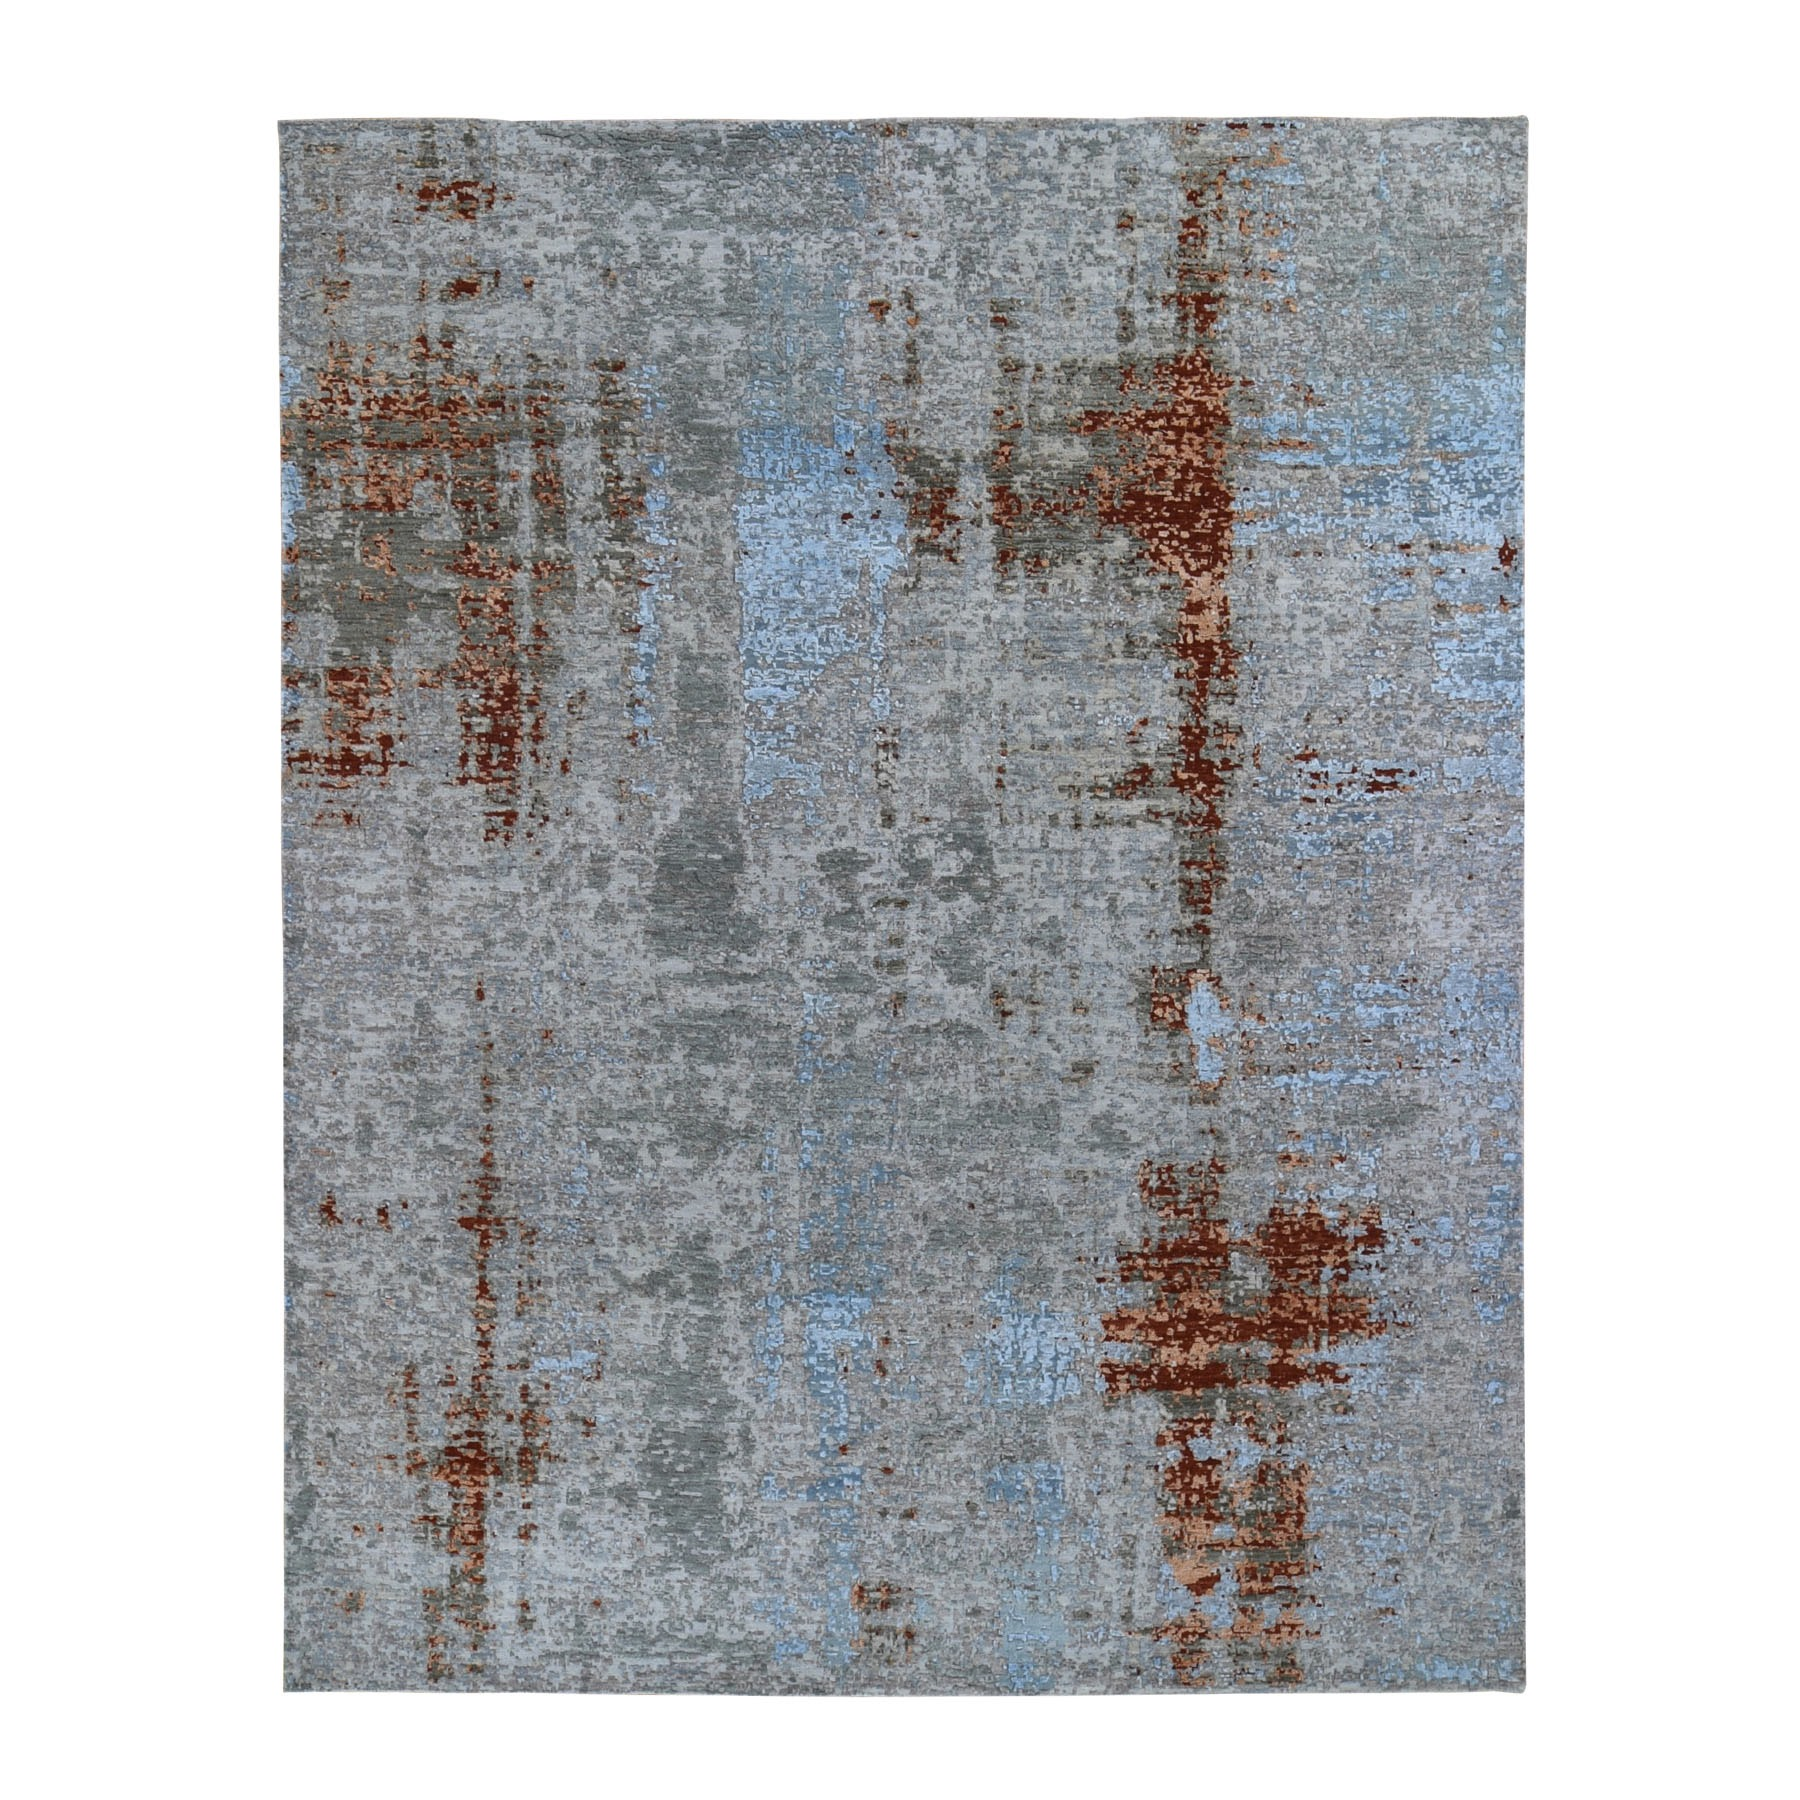 8'x10' Abstract Design Wool And Silk Denser Weave Hand Woven Oriental Rug